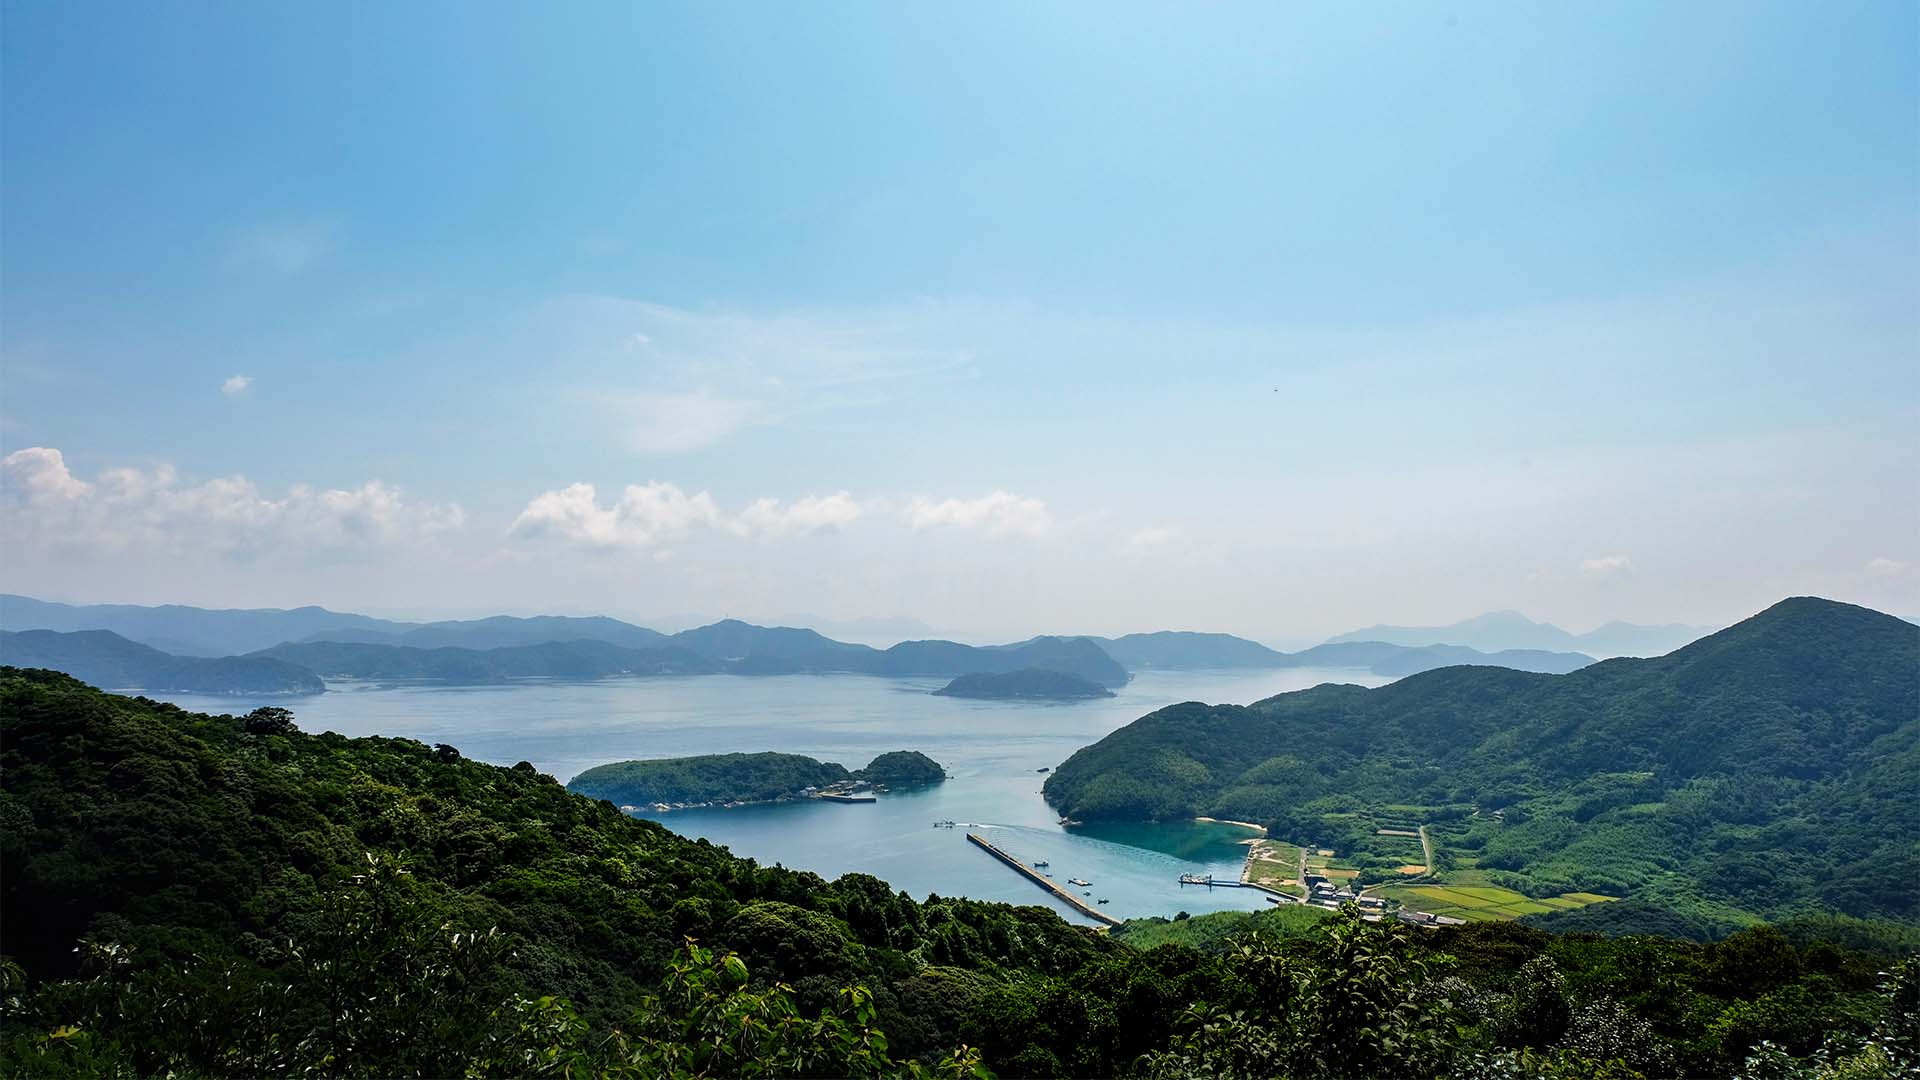 The Goto Islands are home to stunning natural scenery